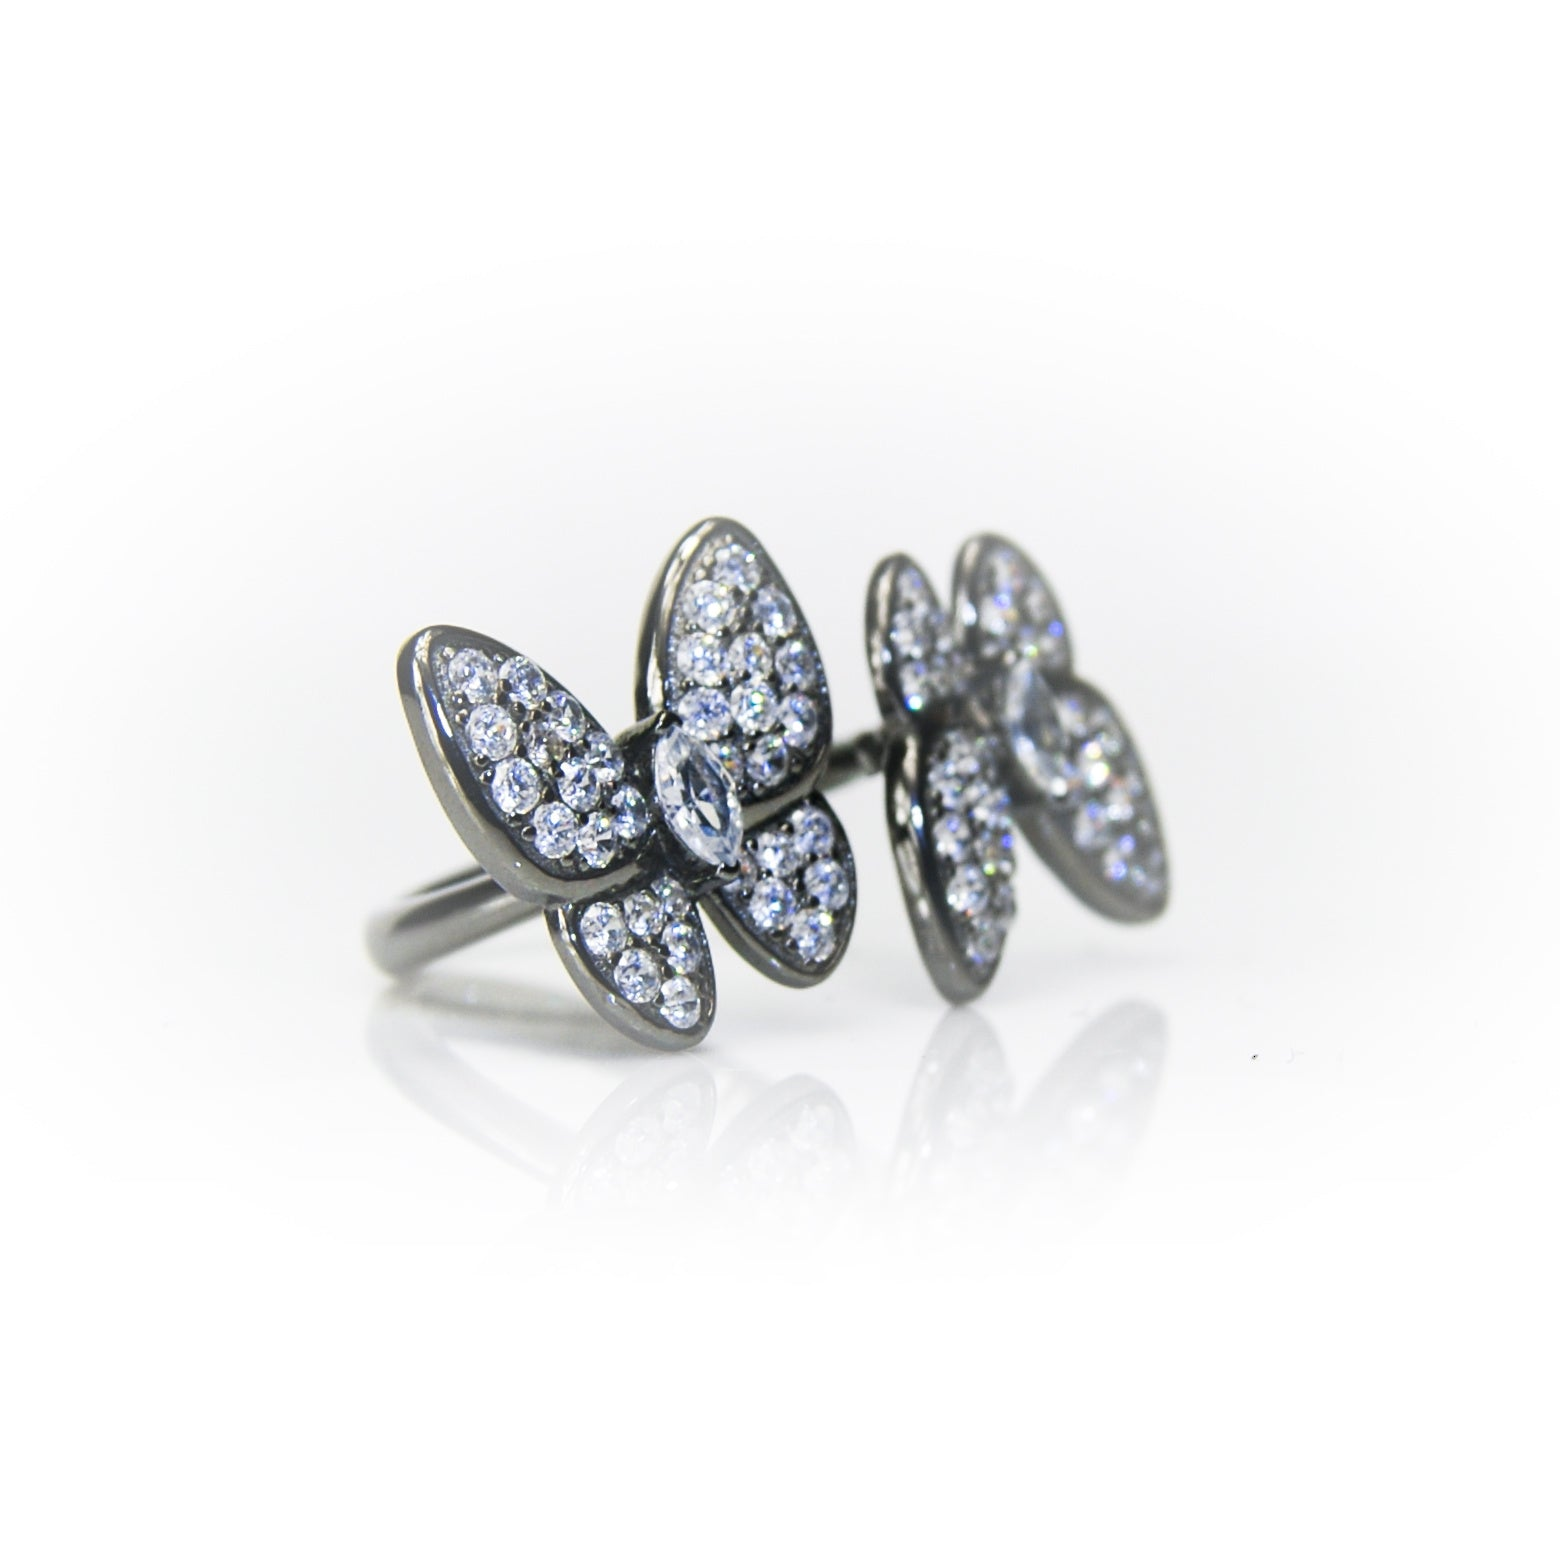 'IVY' DiamondB Studded Butterflies Statement Ring | RINGS | BECKY JEWELRY